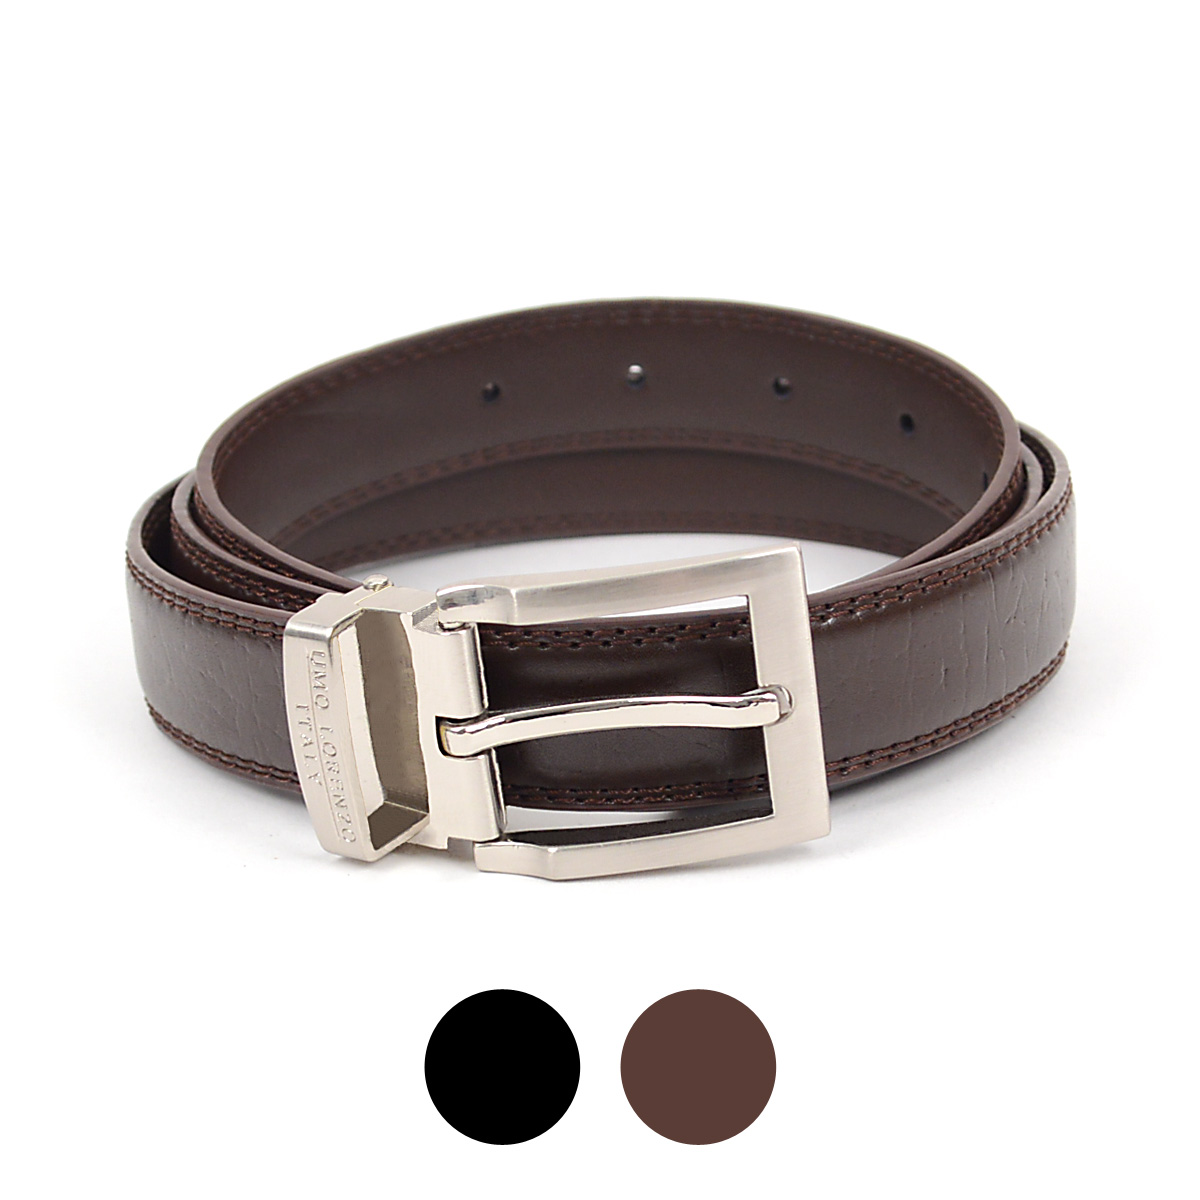 18pc Men's Genuine LEATHER Belts JC2